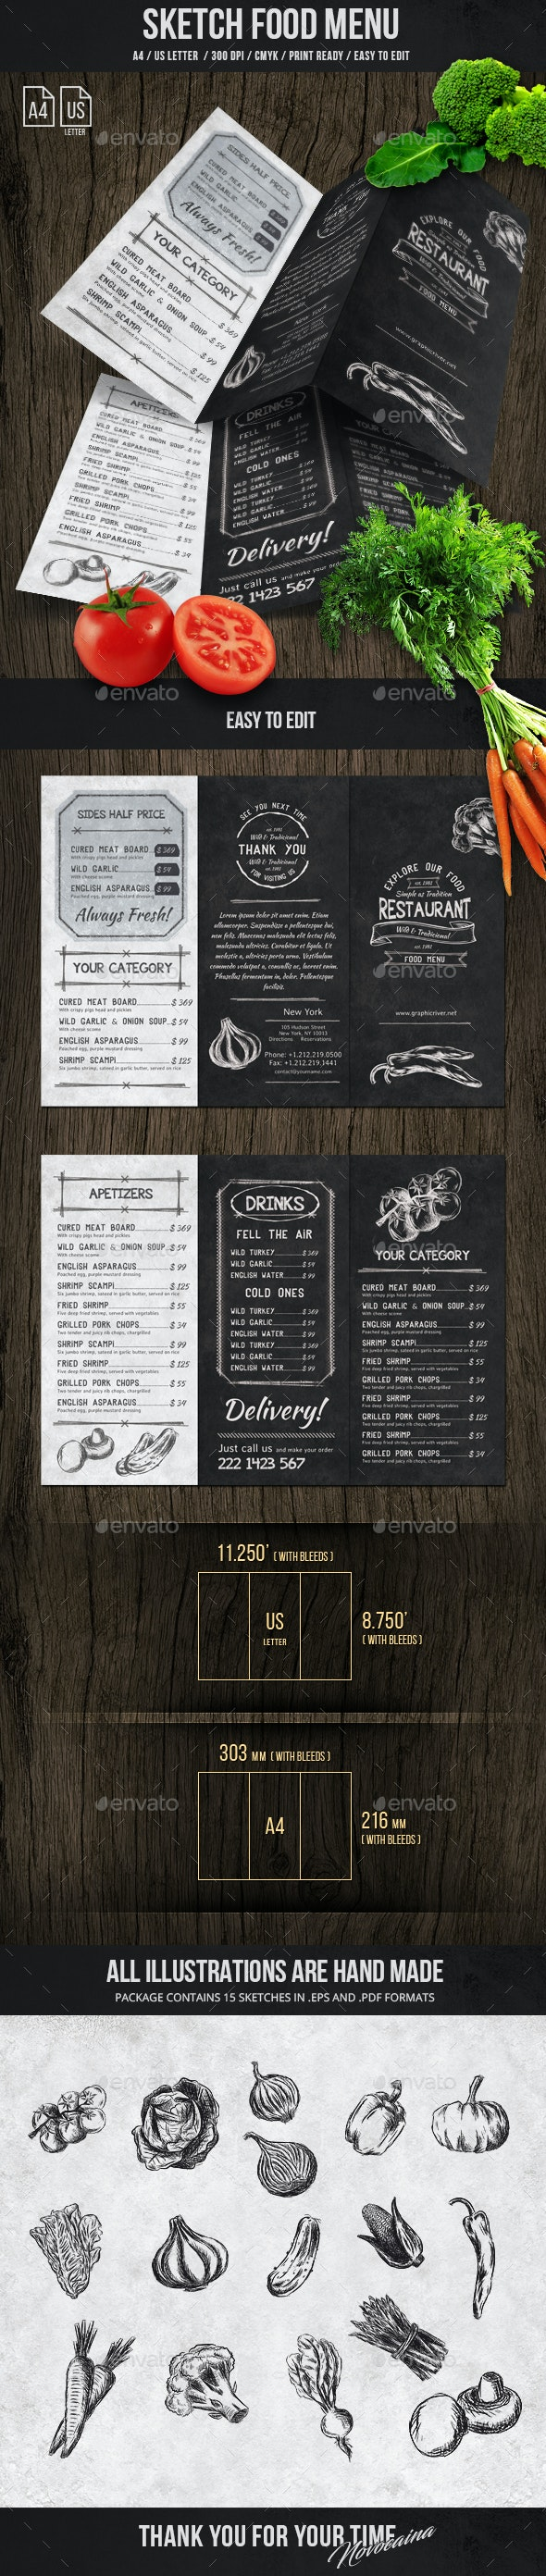 Sketch Trifold Food Menu A4 and US Letter - Food Menus Print Templates